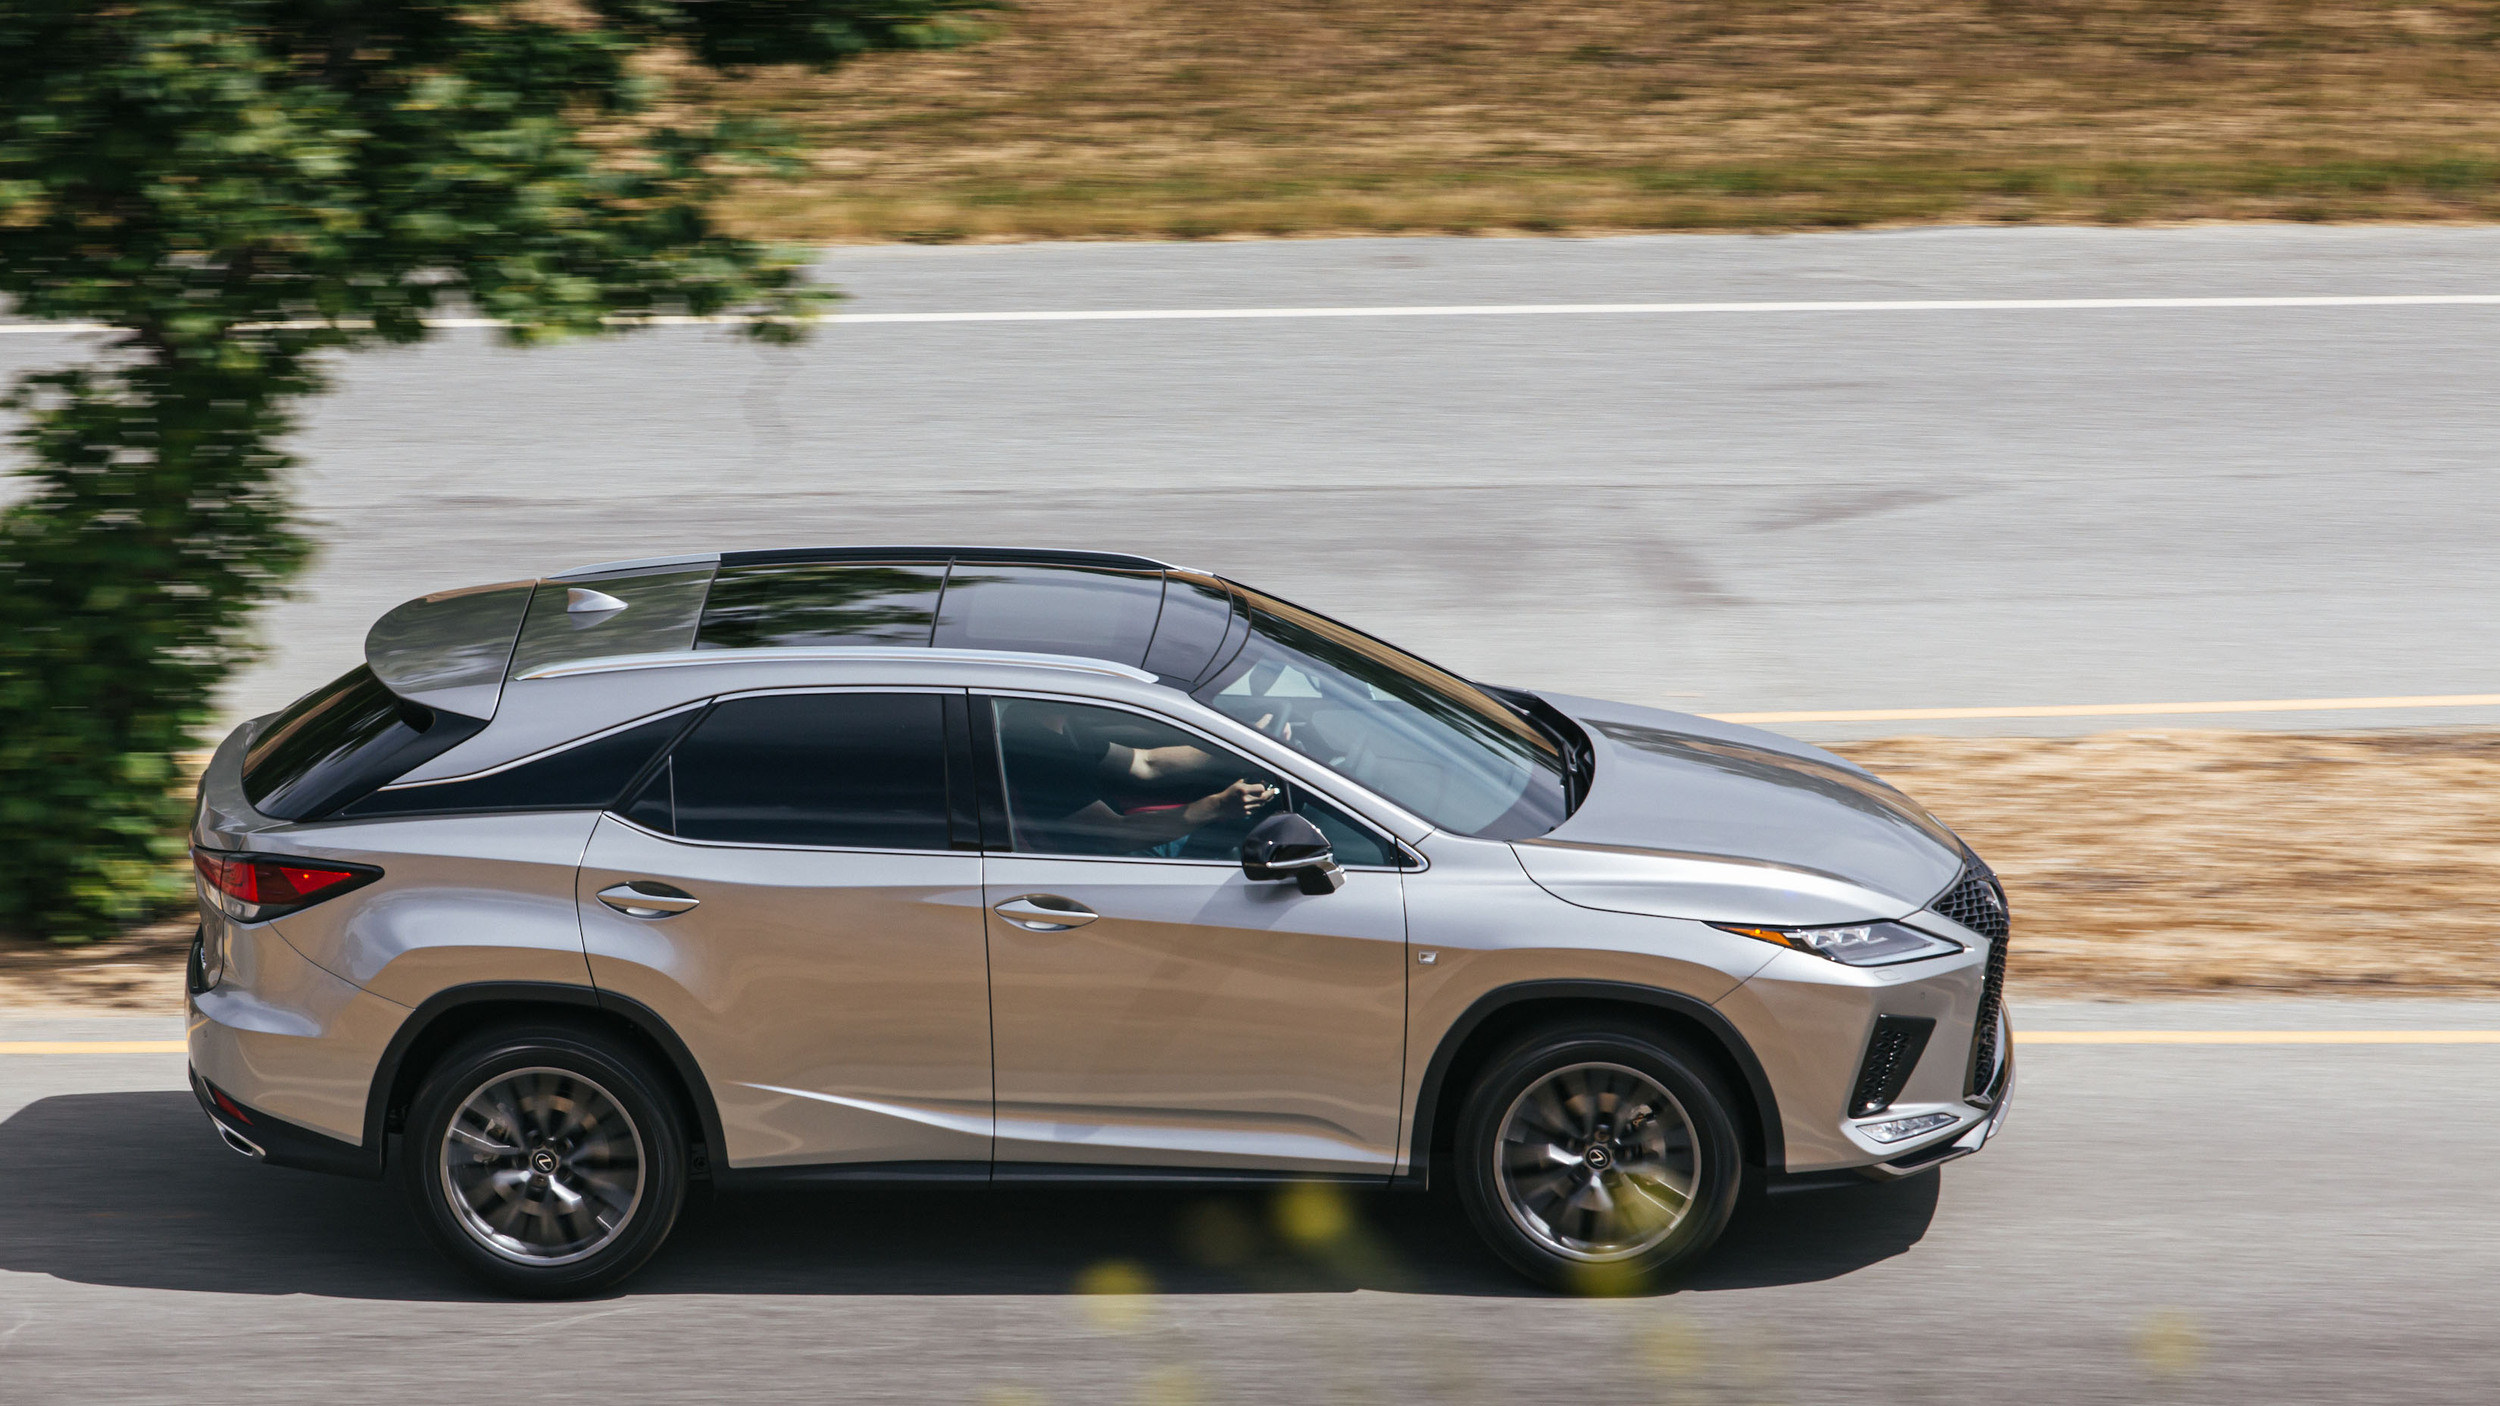 Lexus Certified Pre Owned >> 2020 Lexus RX350 and RX450h updated with new styling, improved tech | Autoblog